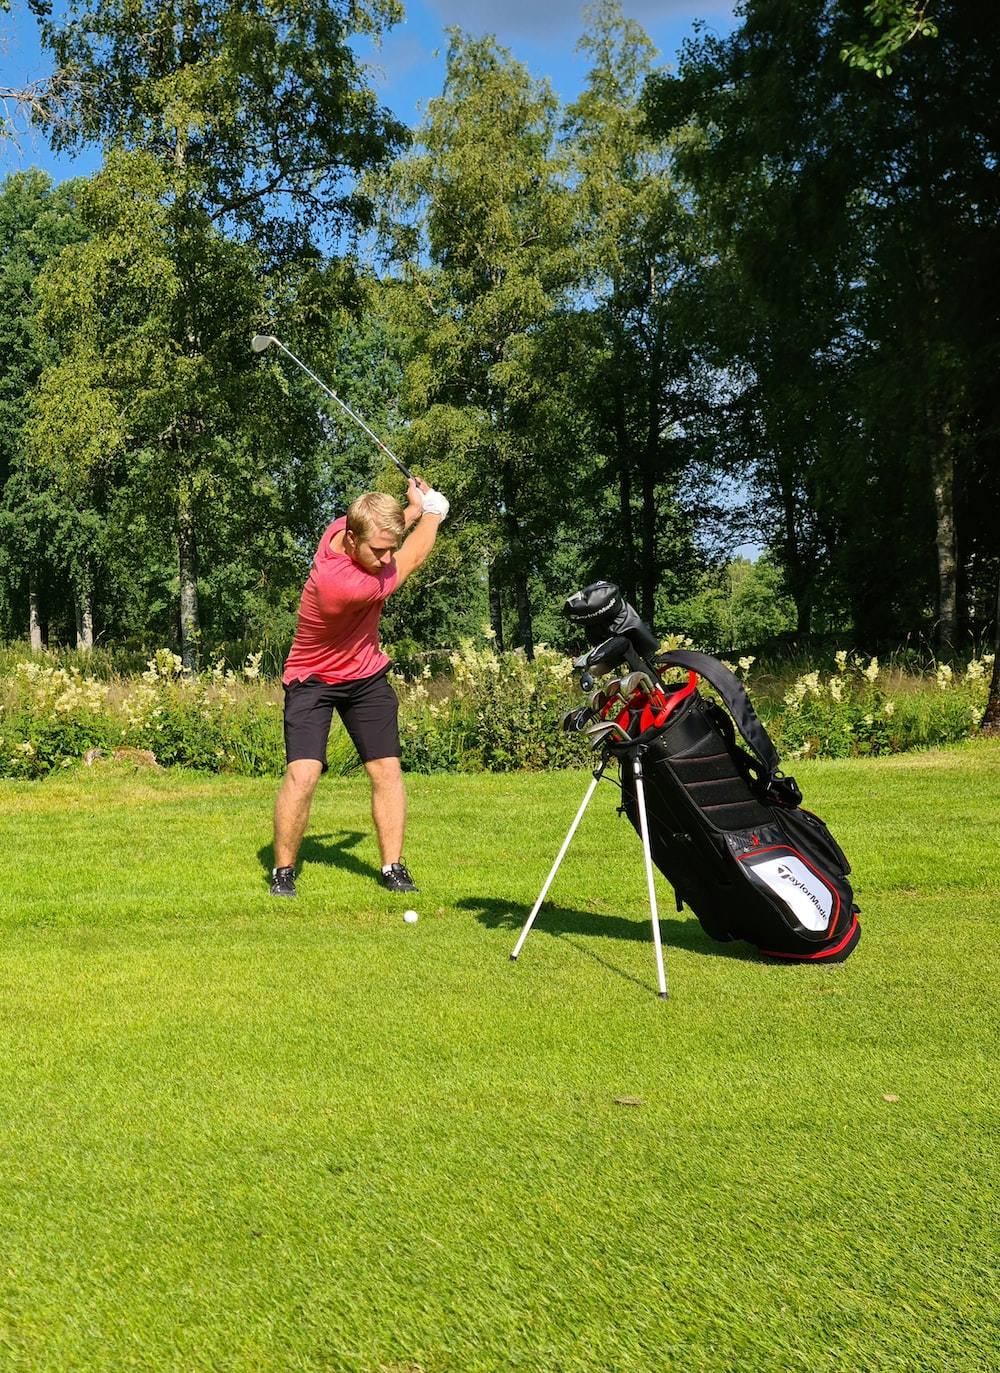 man in red t-shirt and black shorts playing golf during daytime